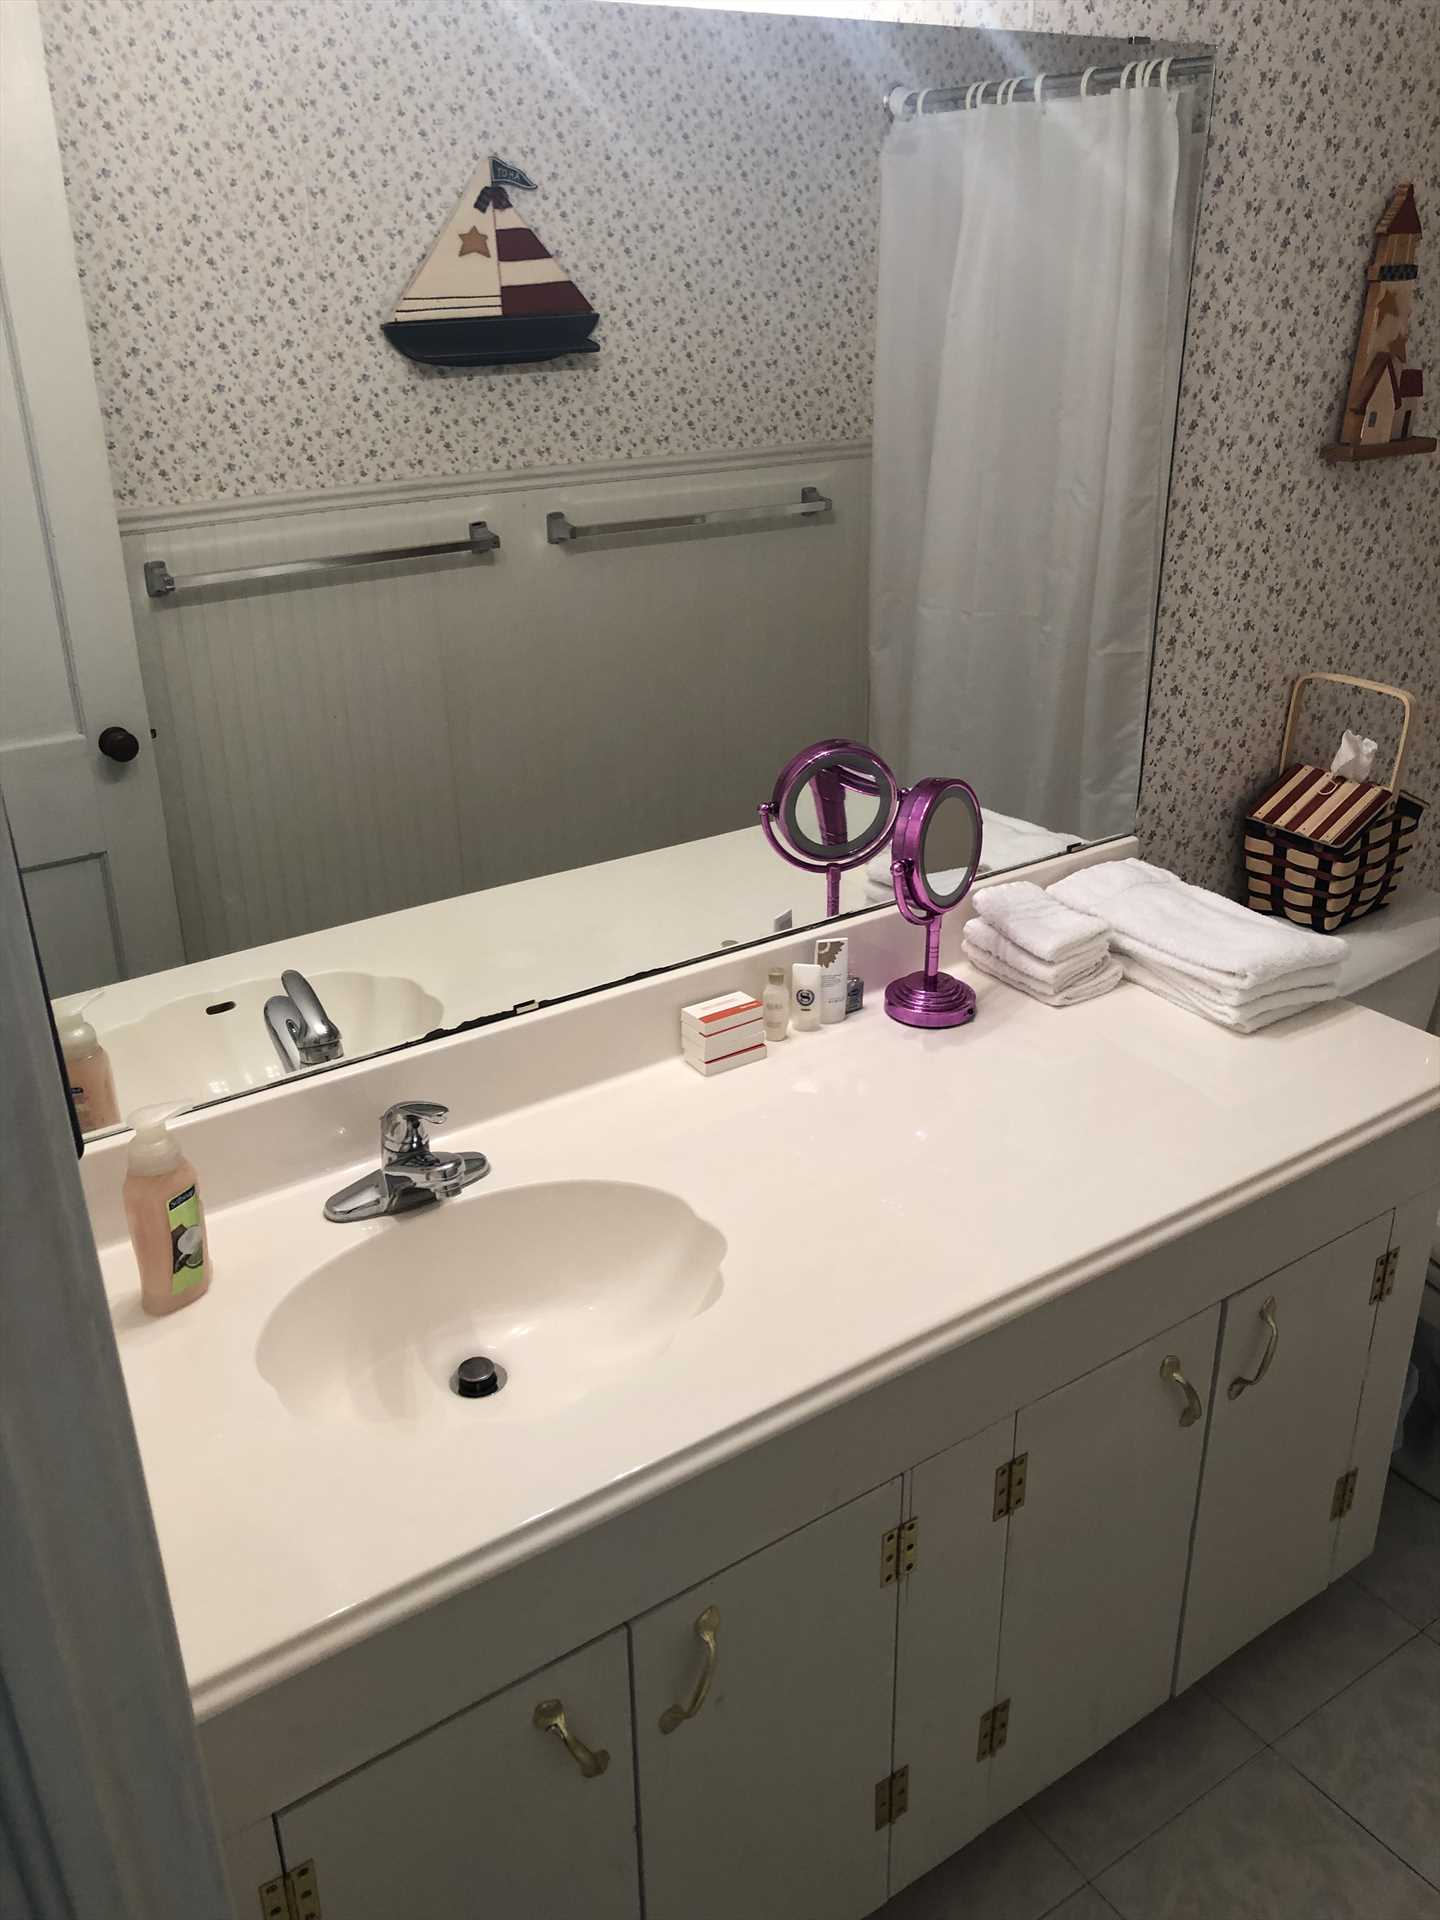 The immaculate full bath includes a tub and shower combo, and fresh and clean bed and bath linens are included!